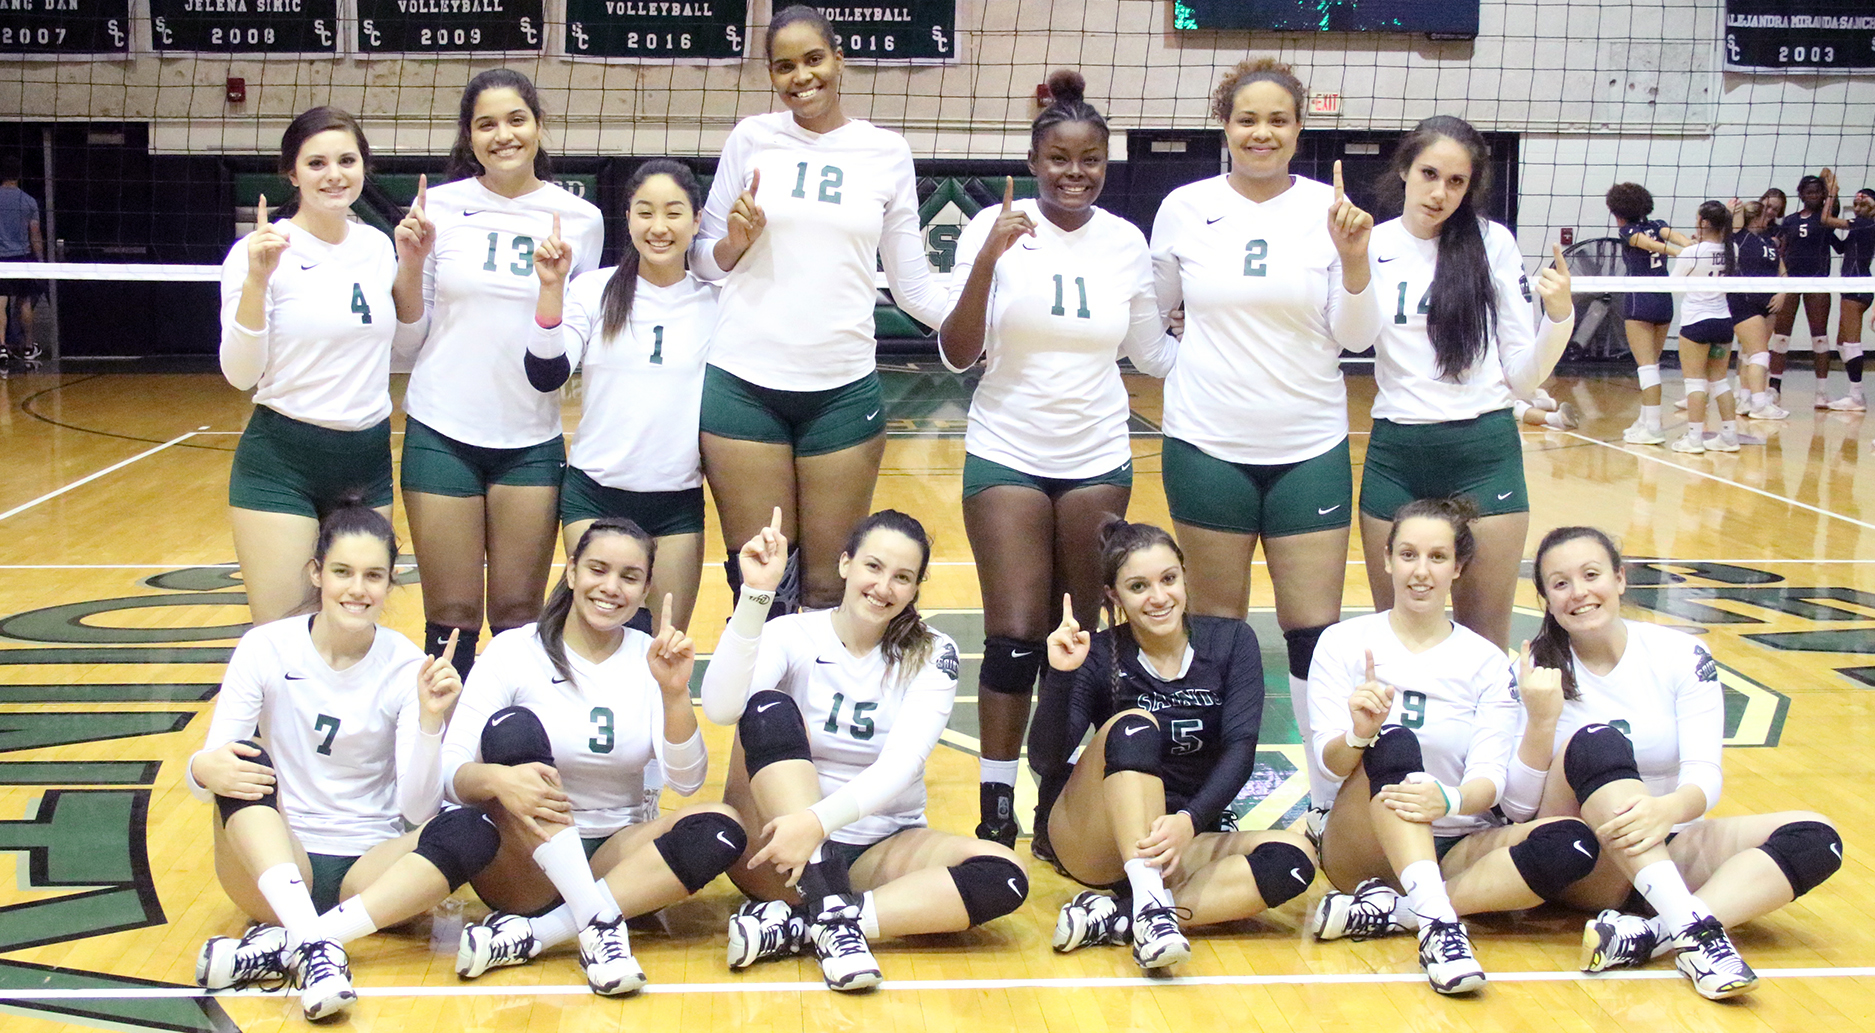 Seward Spikers Move Up to 6th in NJCAA Rankings